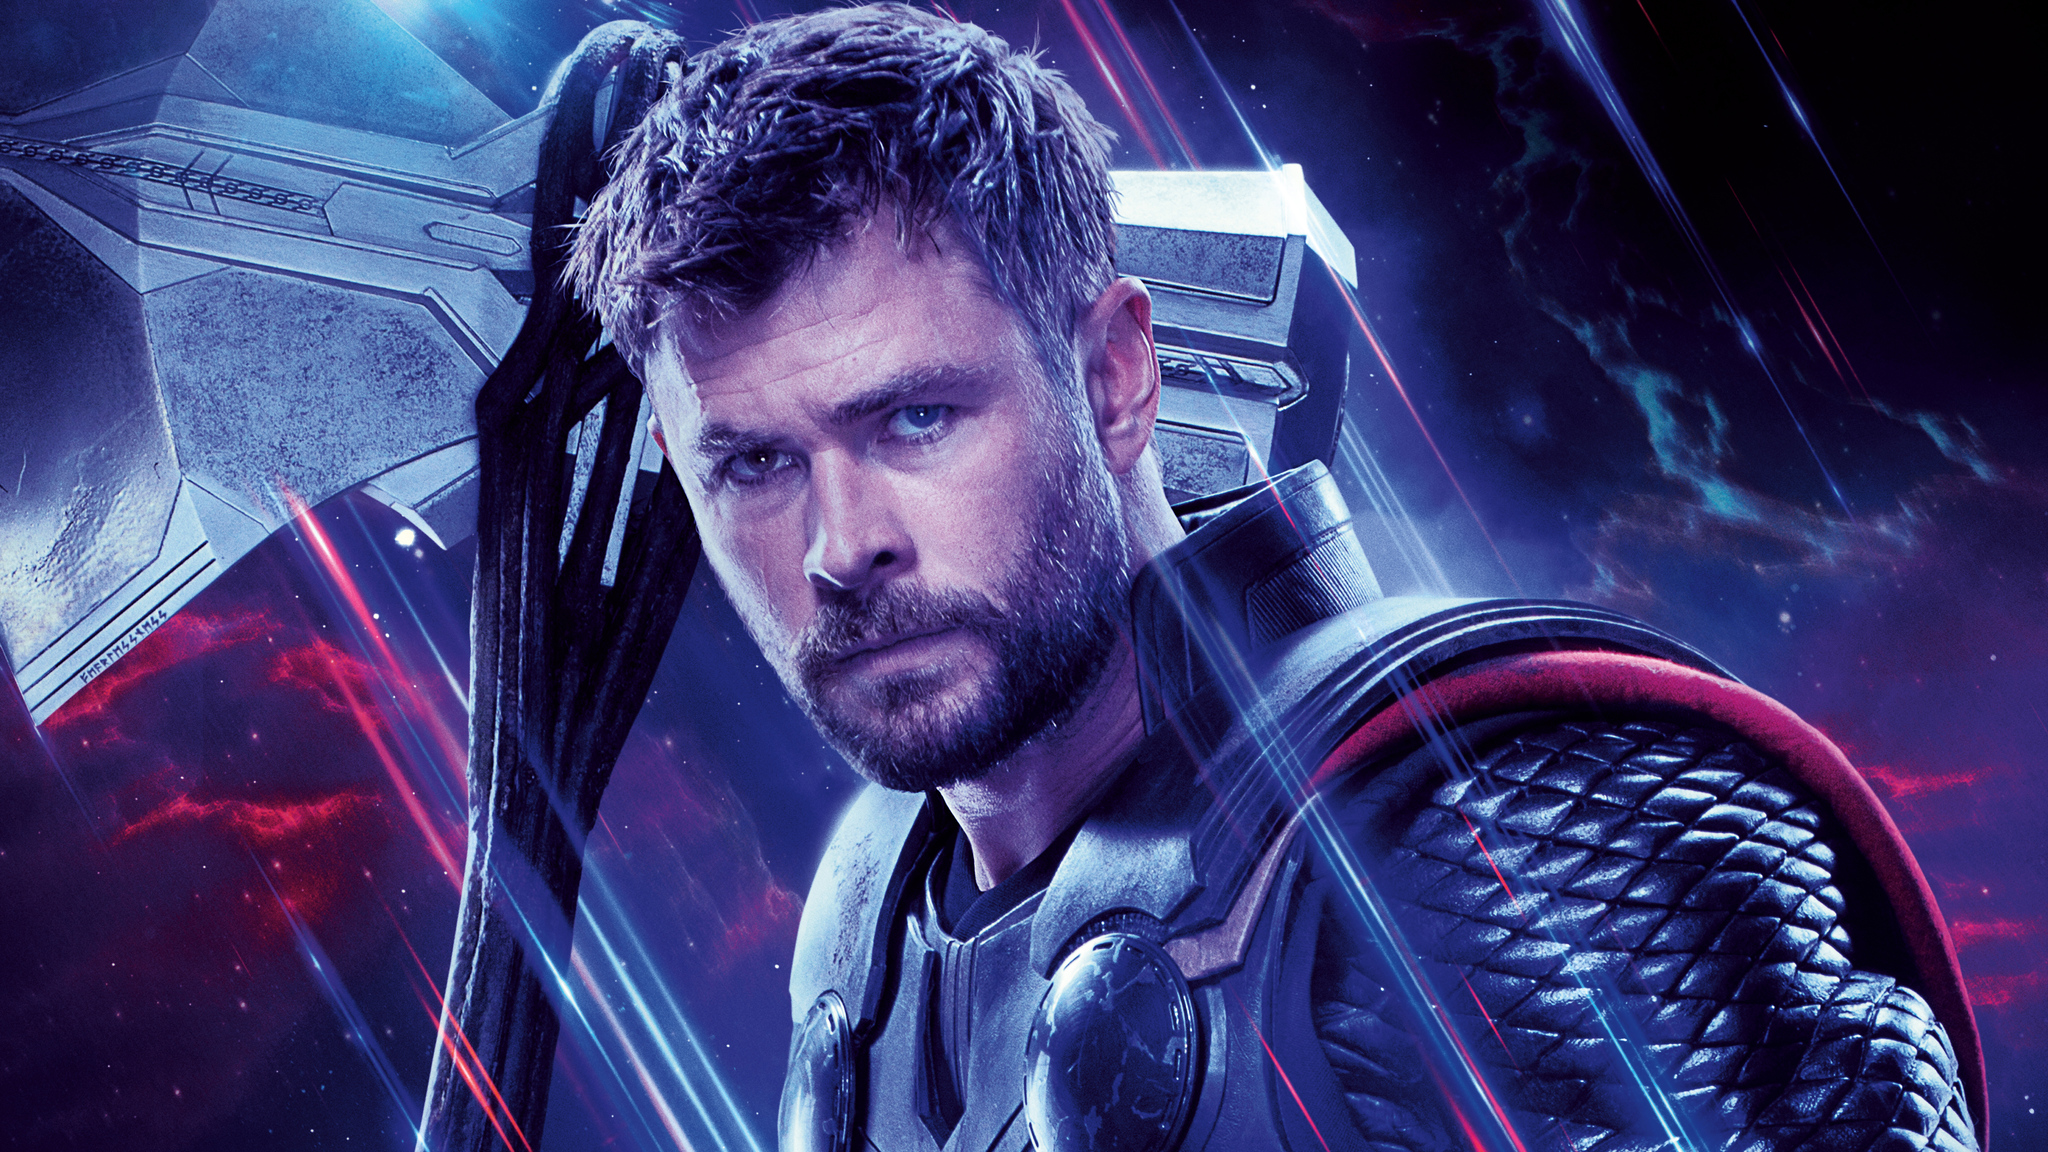 2048x1152 Thor Avengers End Game 8k 2048x1152 Resolution ...